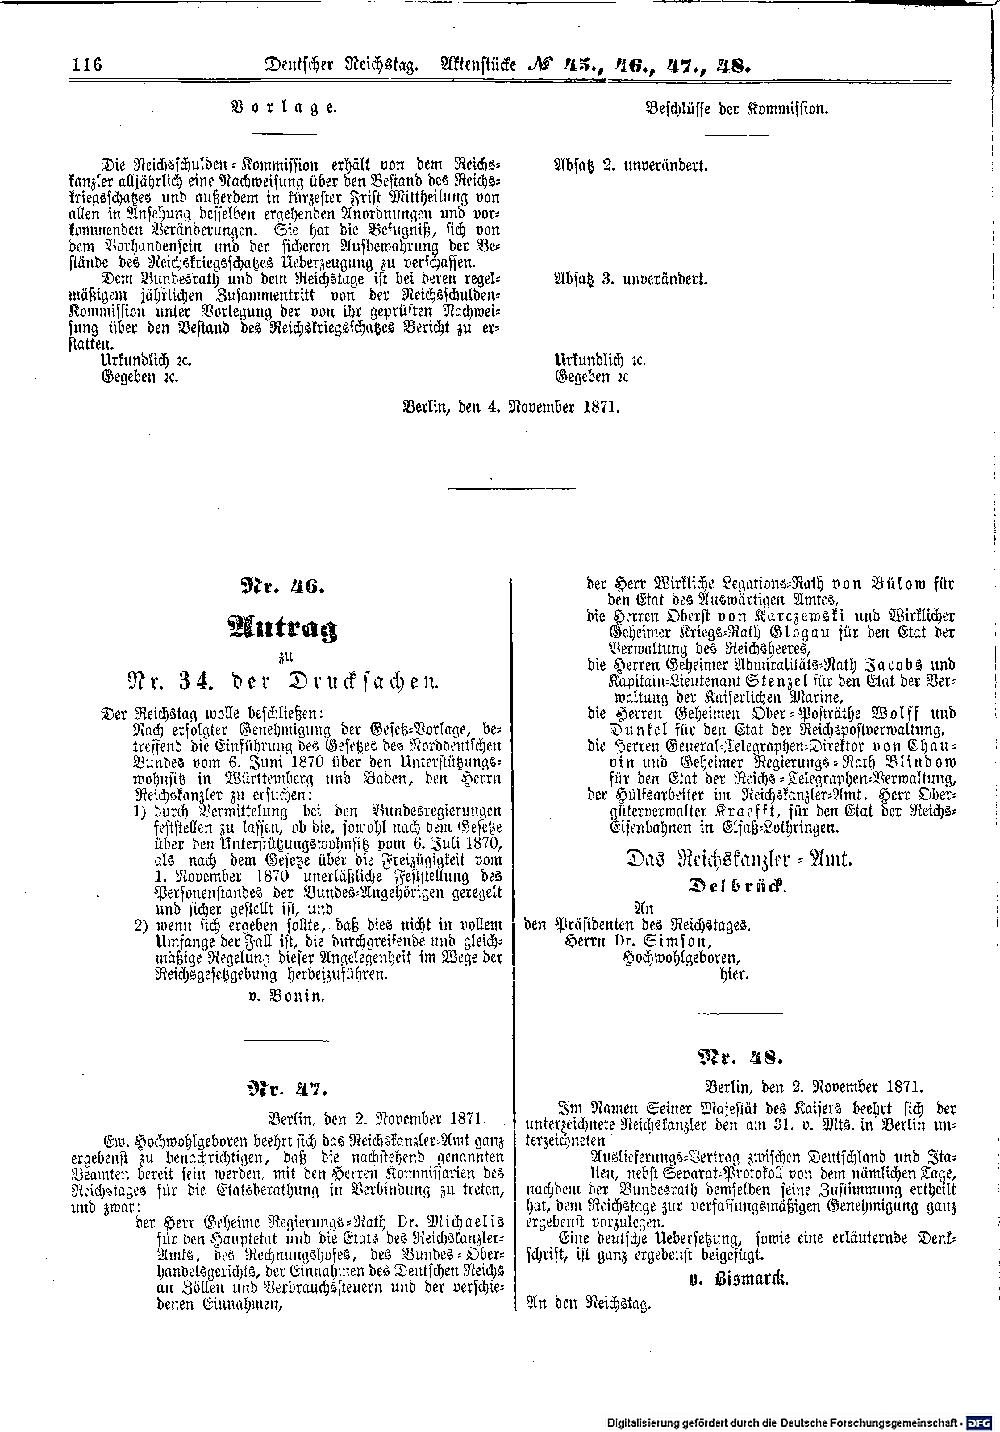 Scan of page 116